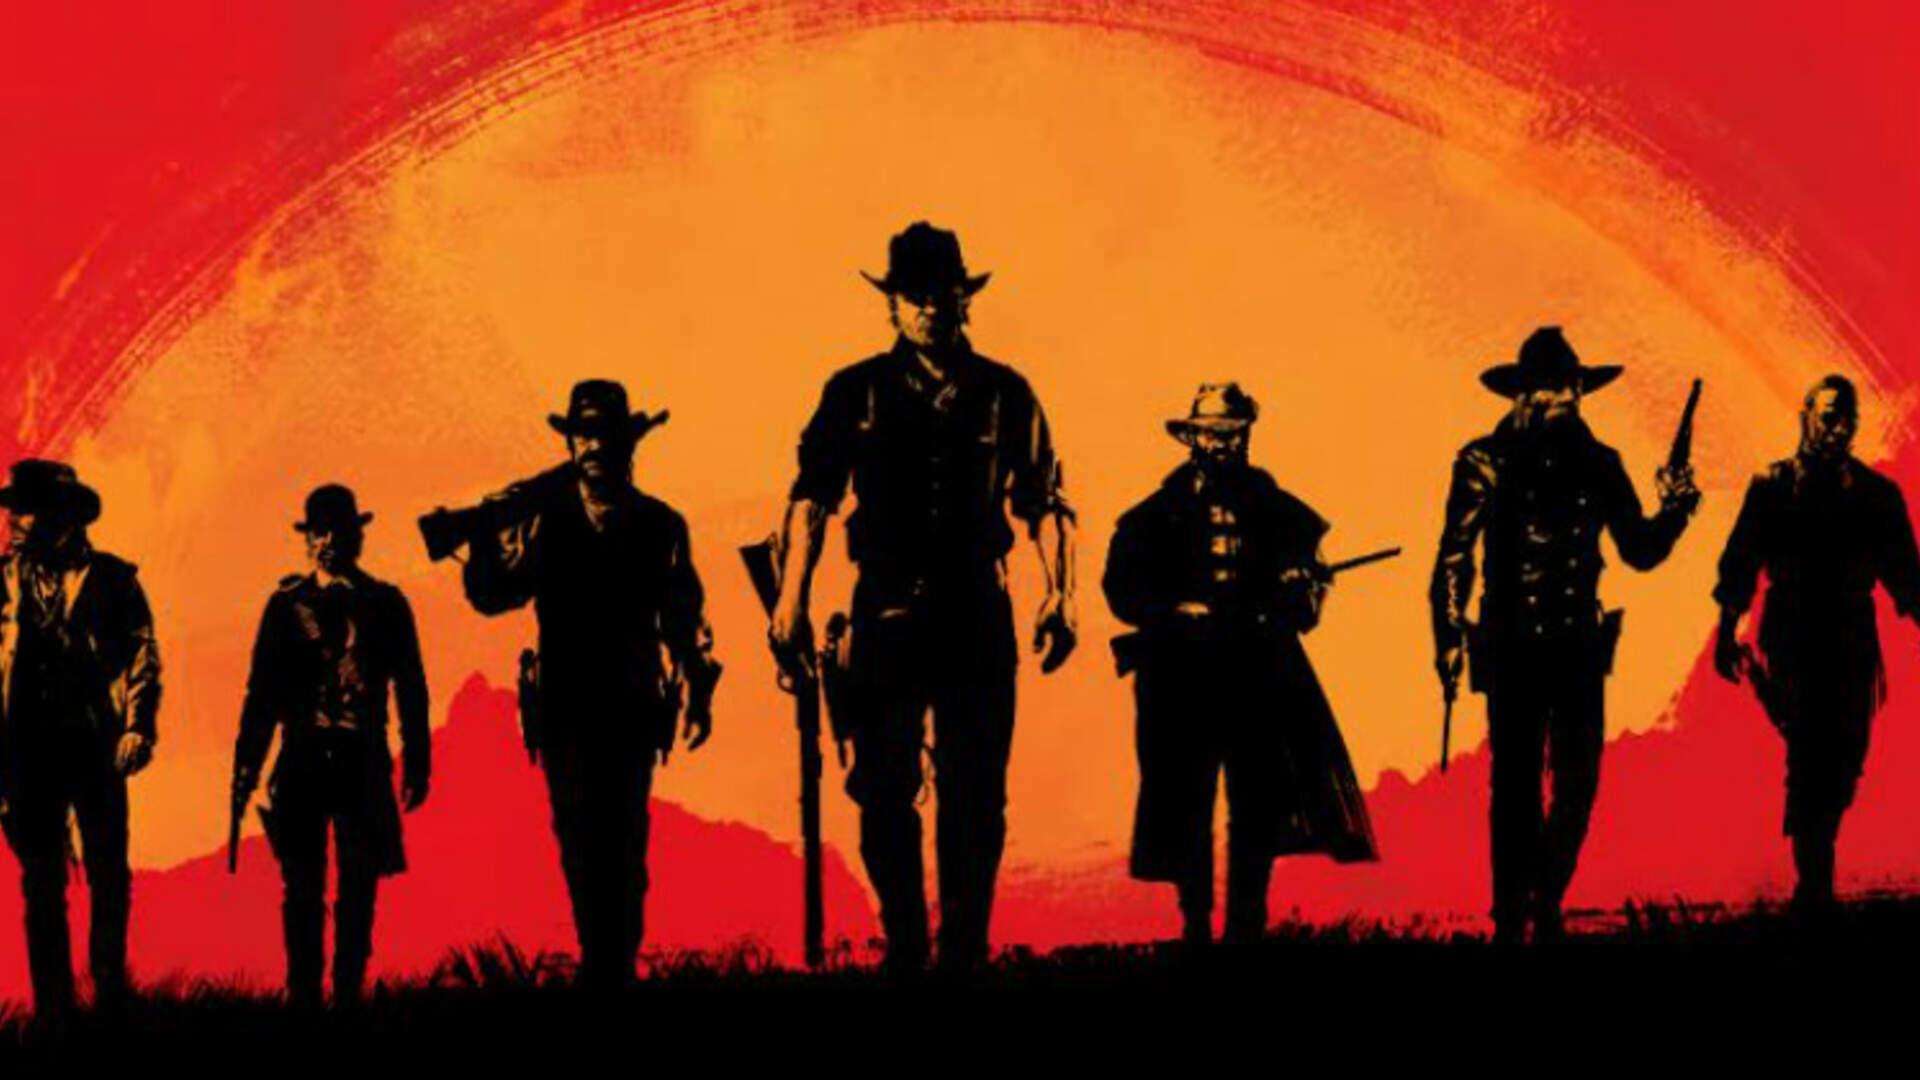 Take-Two Is Being Coy About Whether Red Dead Redemption 2 Is Coming to PC